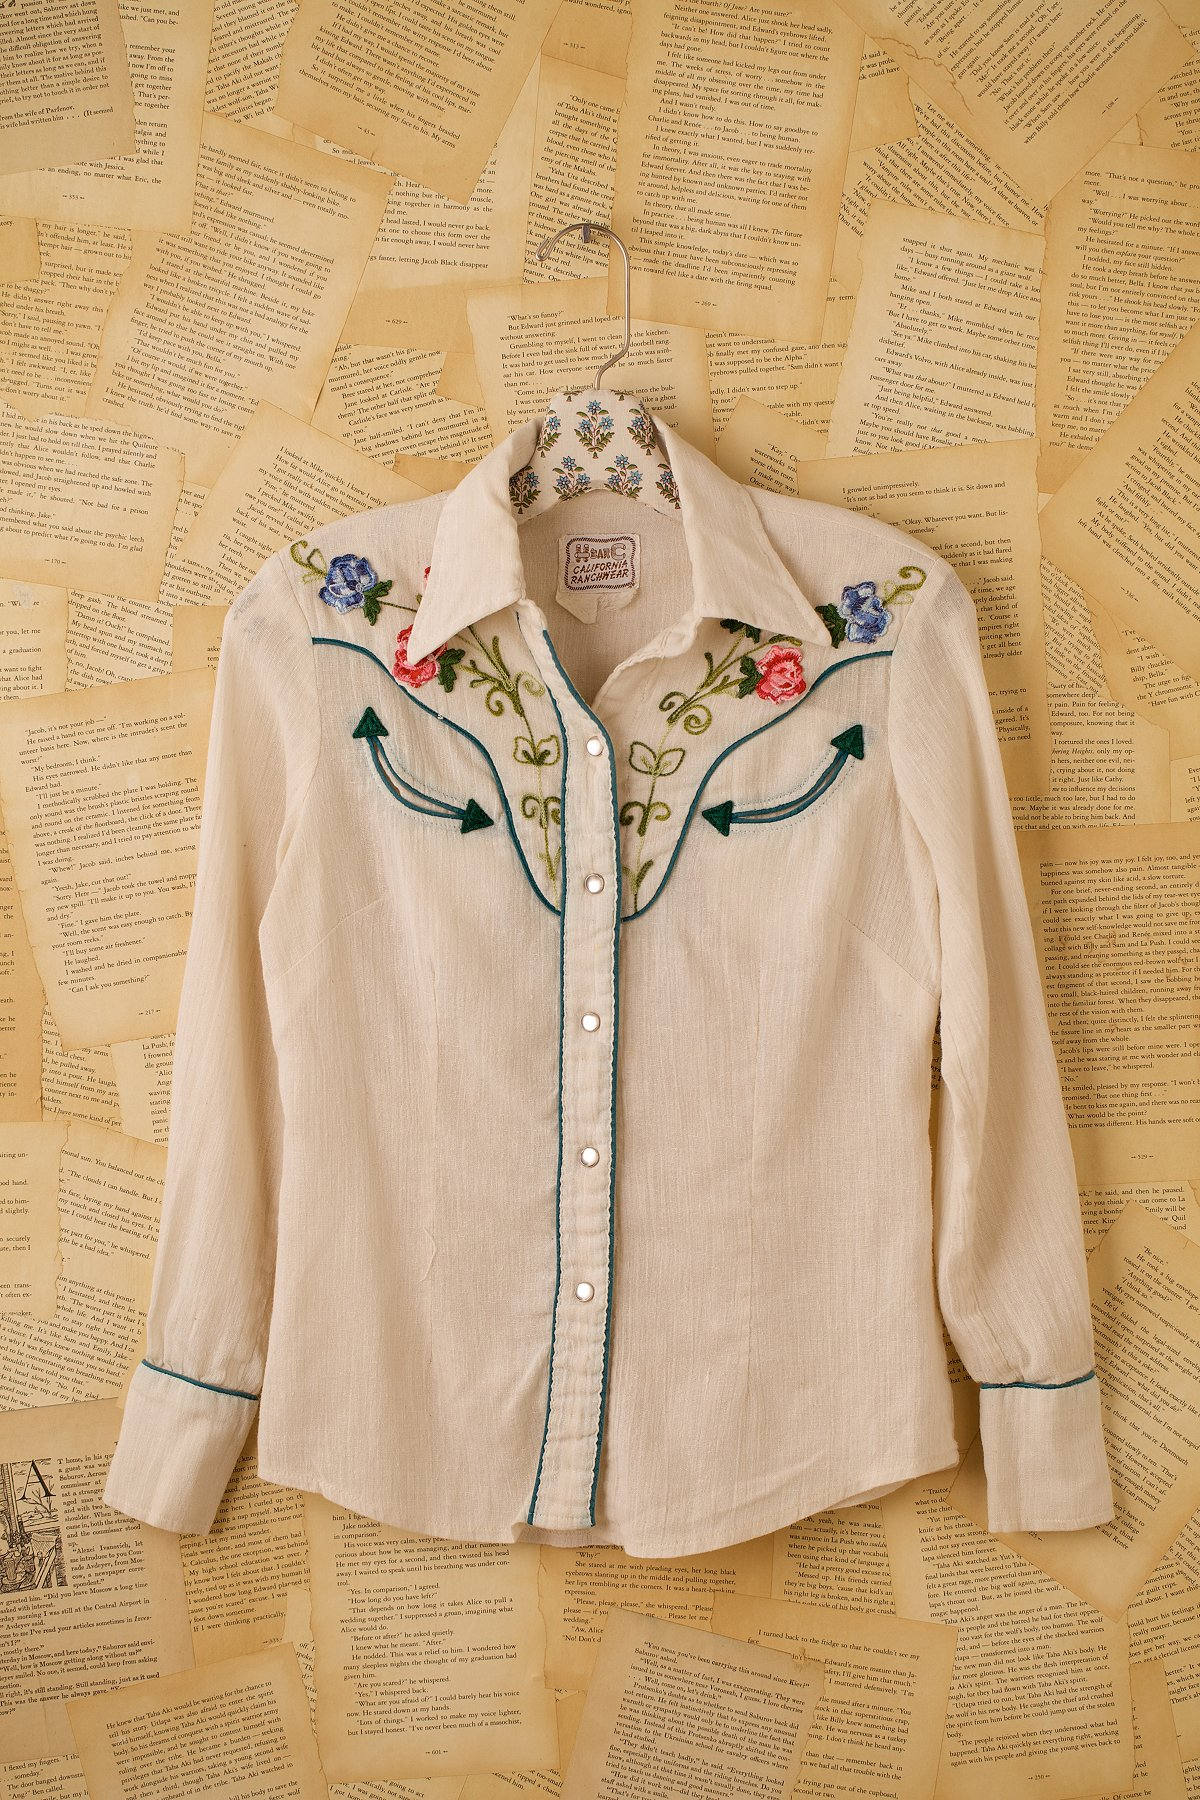 Vintage White Cotton Western Shirt with Embroidered Flowers